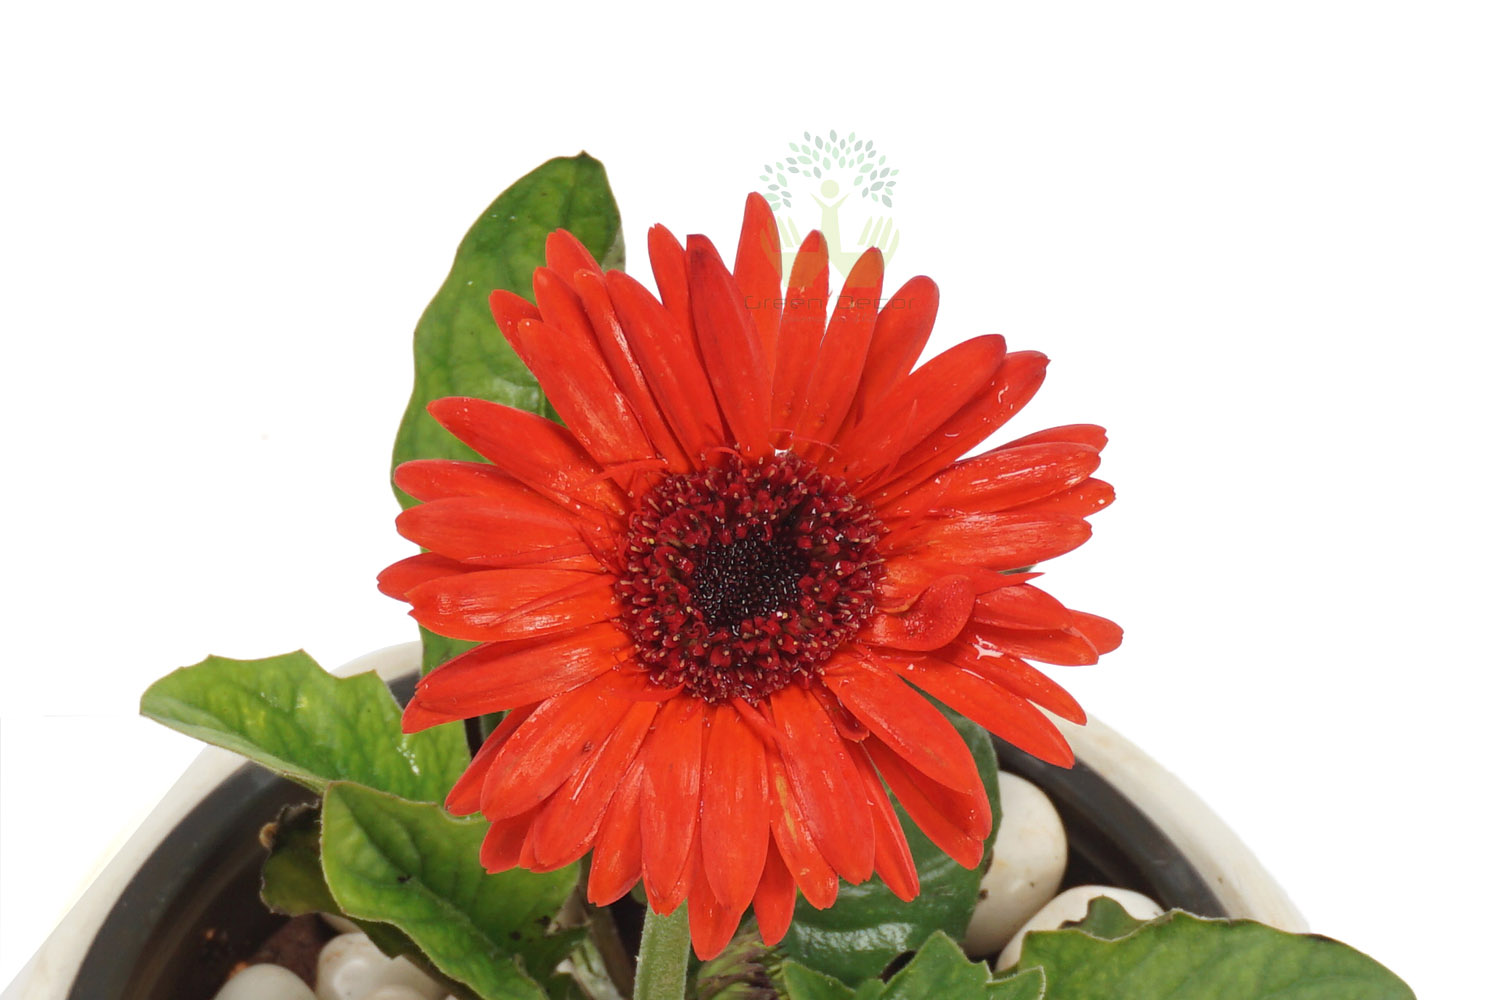 Buy Gerbera Daisy Plants , White Pots and seeds in Delhi NCR by the best online nursery shop Greendecor.